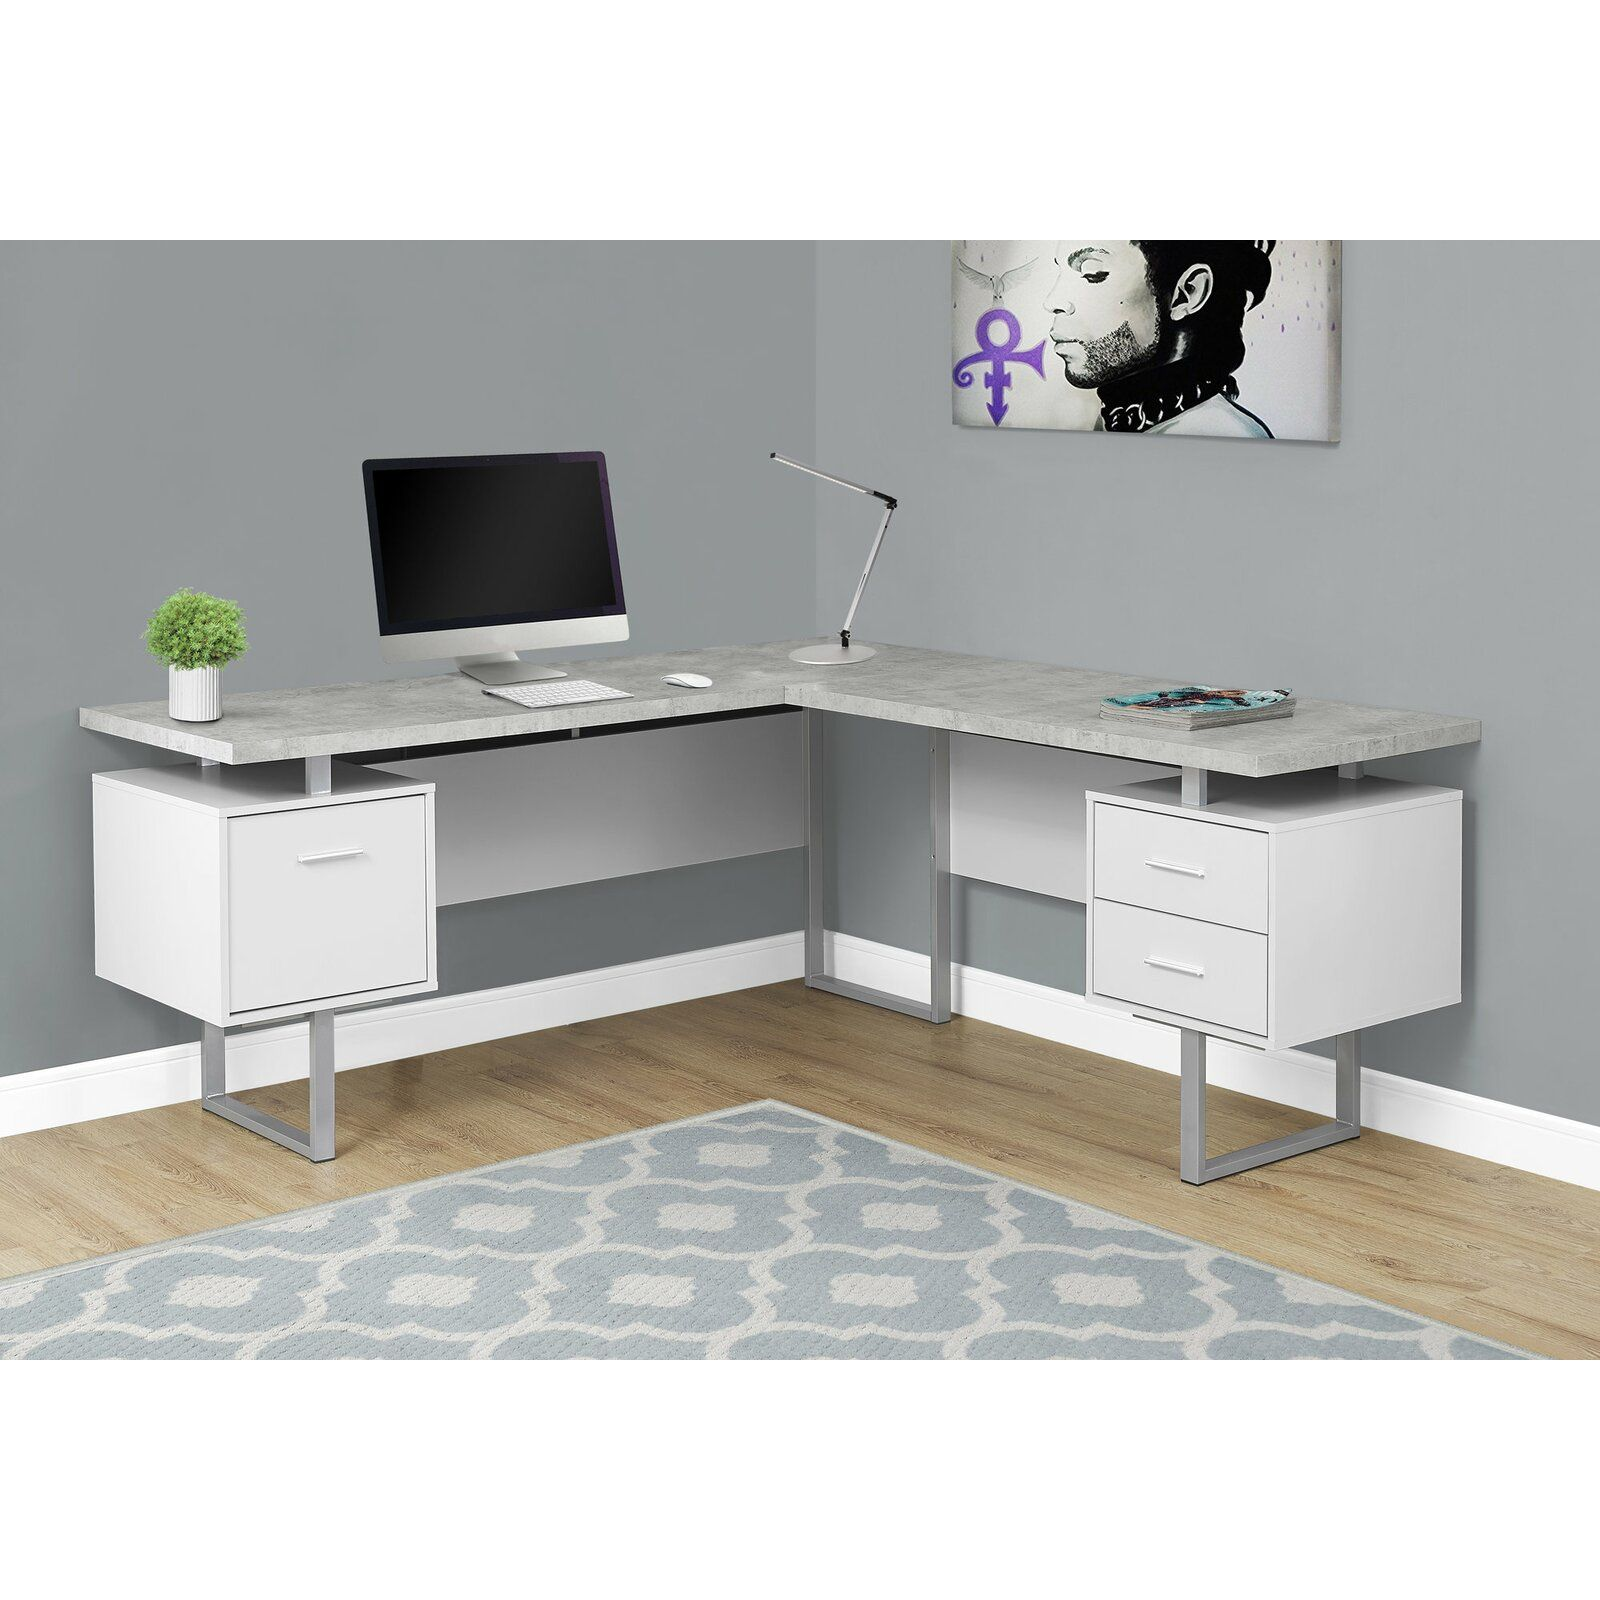 Latitude Run Darroll 3 Drawer L Shape Corner Desk Reviews Wayfair Ca L Shaped Corner Desk Corner Computer Desk Corner Desk